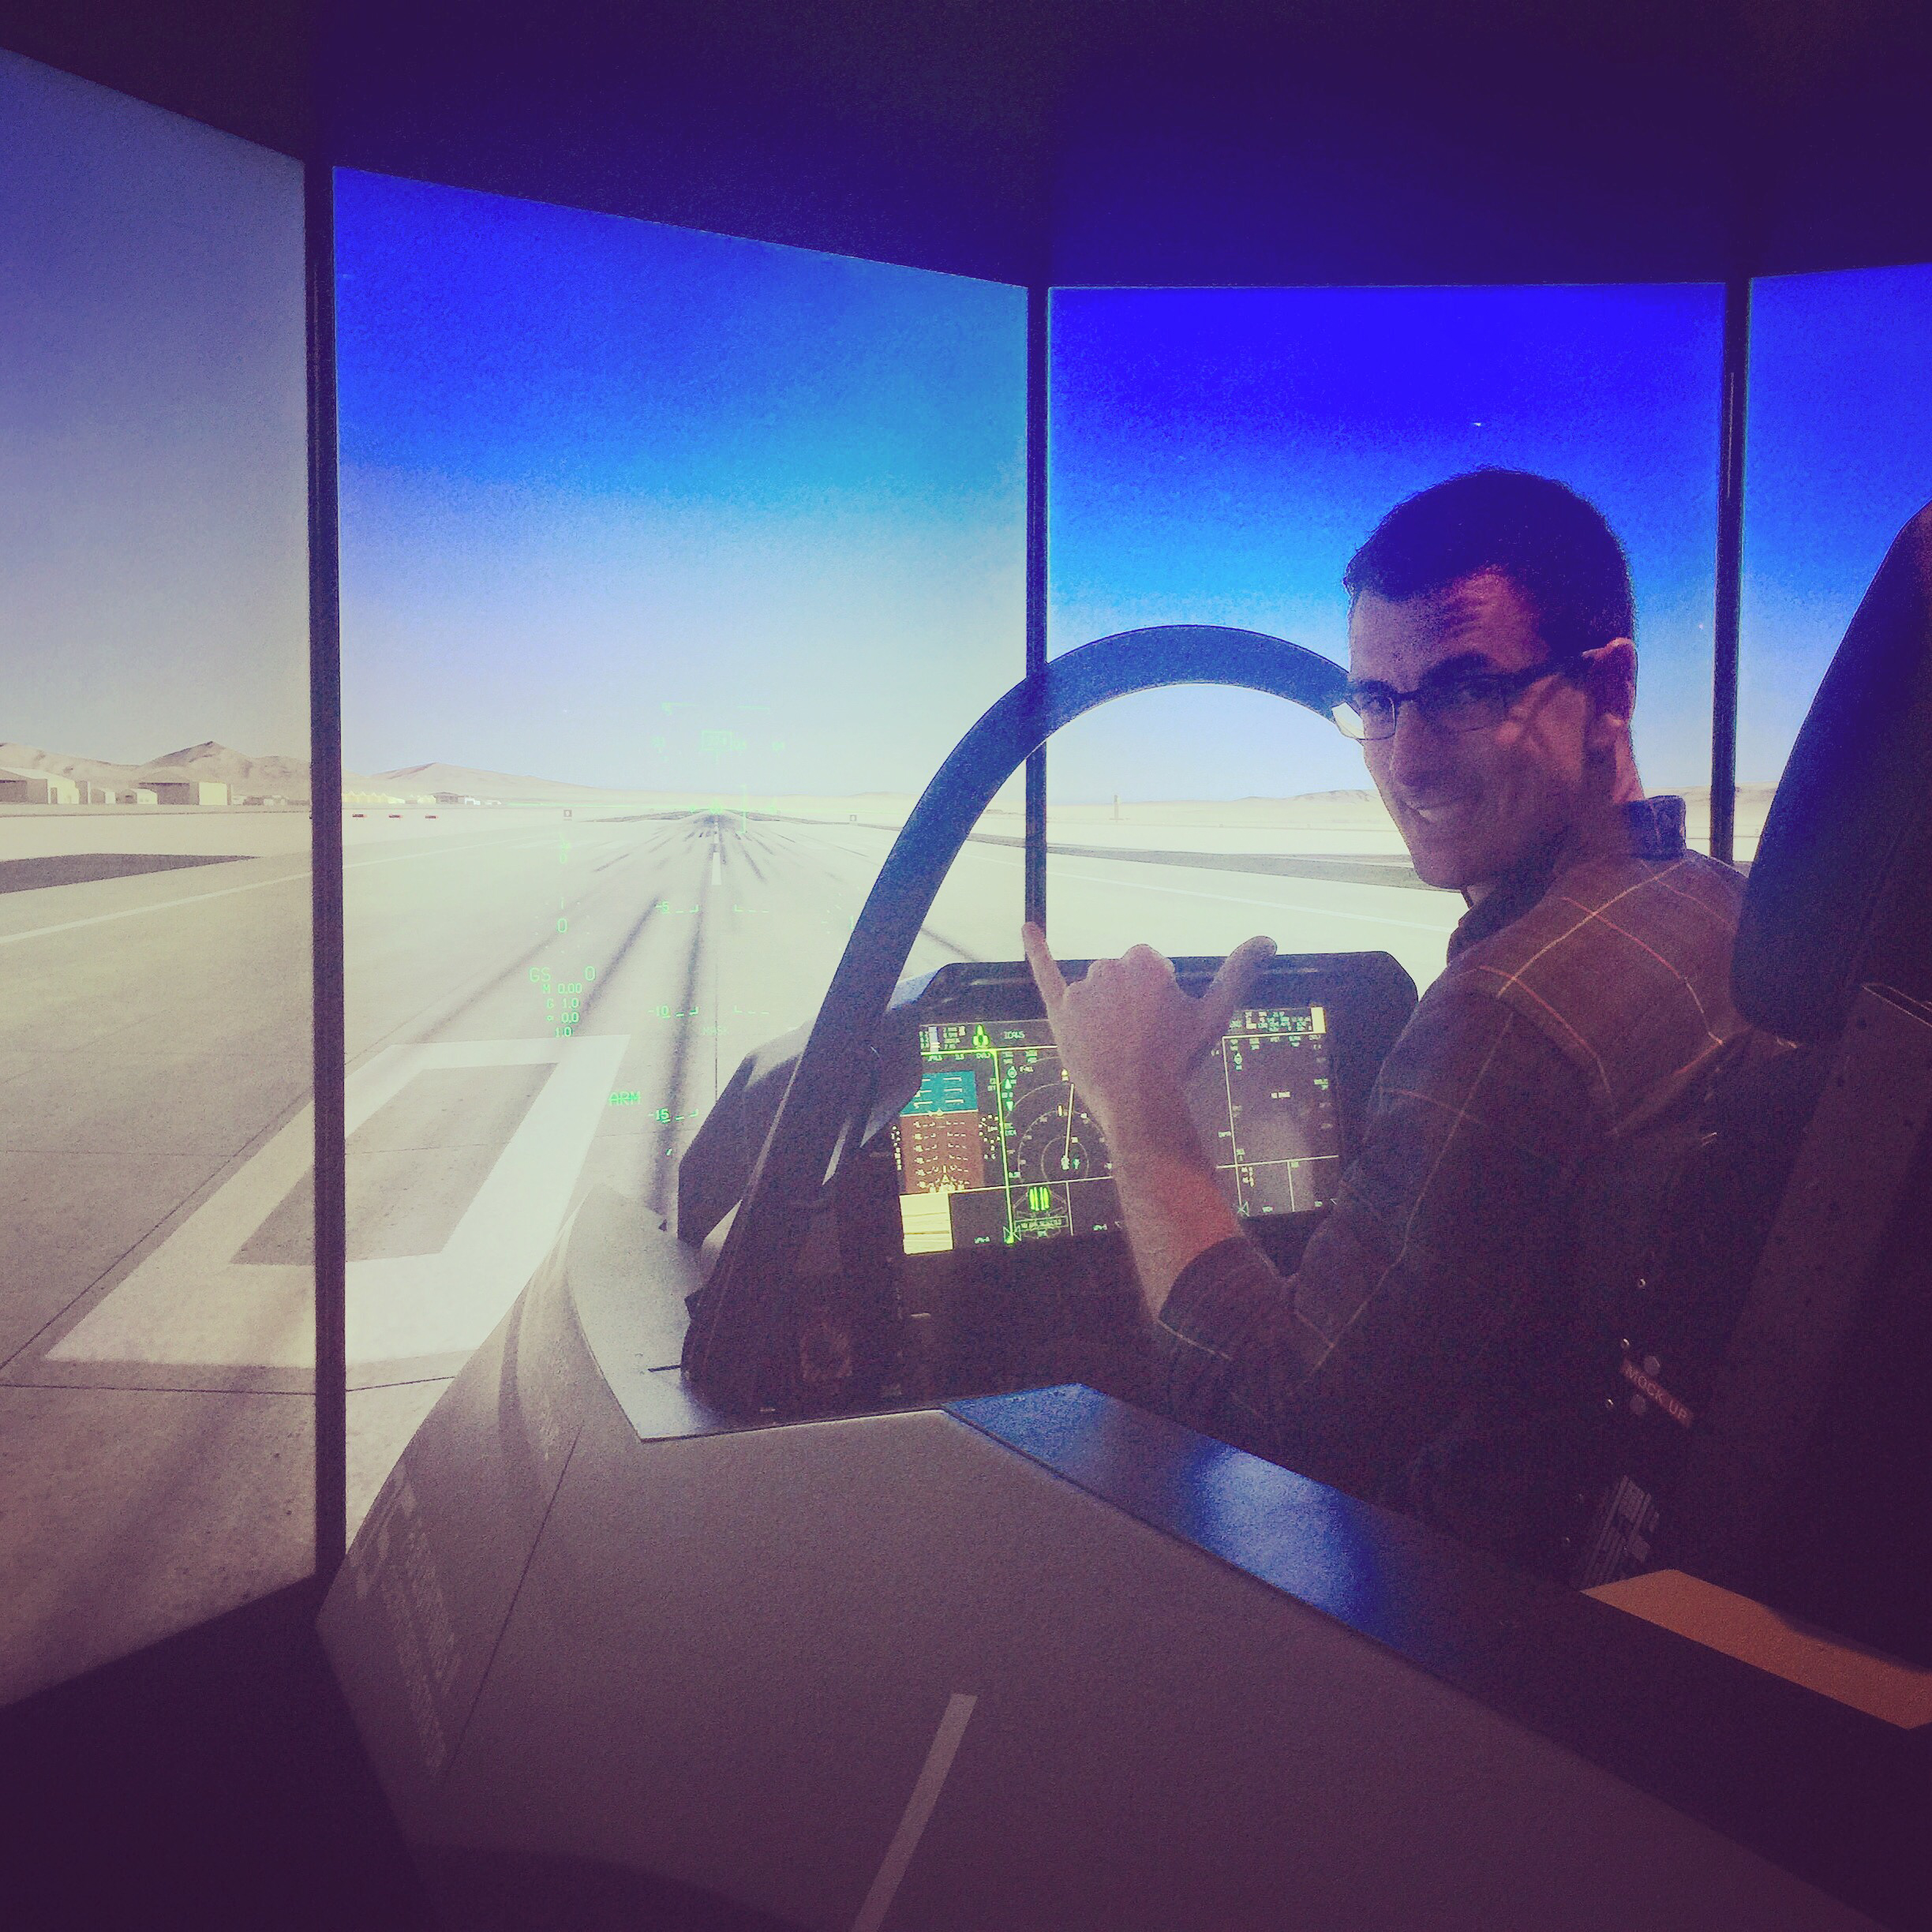 He weasled his way into an F-35 simulator. Lockheed Martin was on hand to show it off to other countries in hopes of selling more aircraft